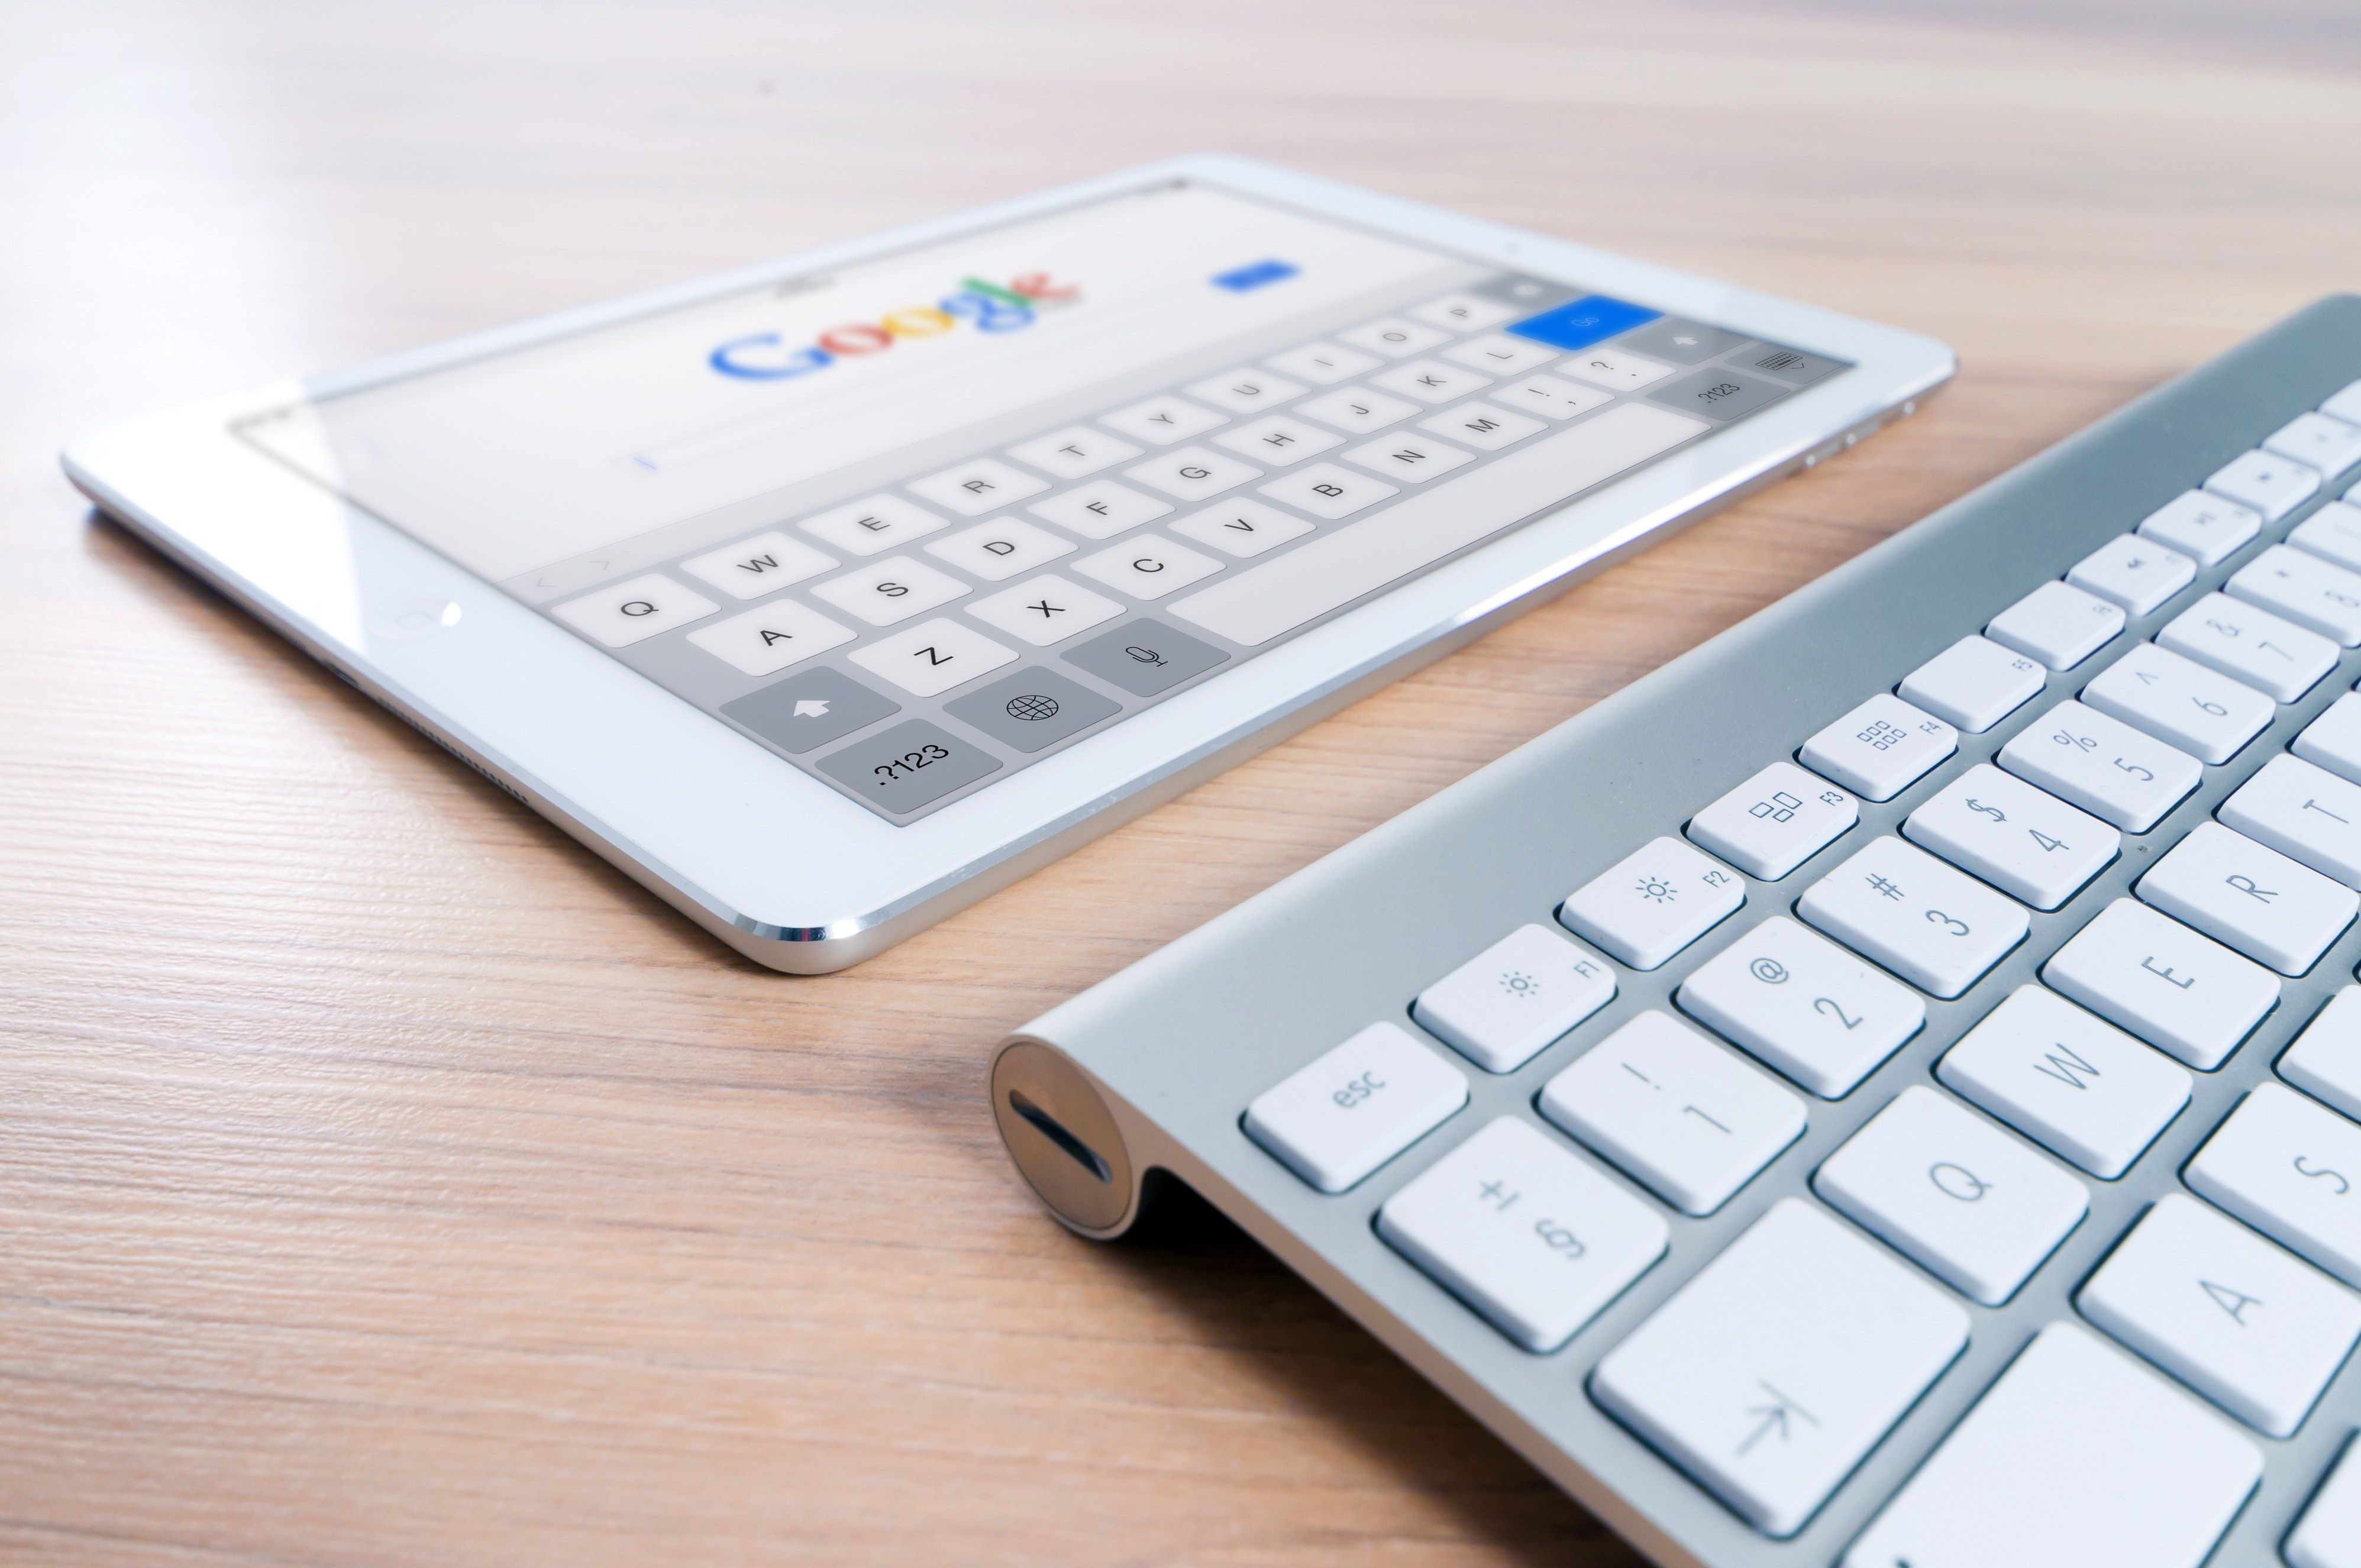 /google-search-updates-how-they-impact-websites-5q1y3t4i feature image